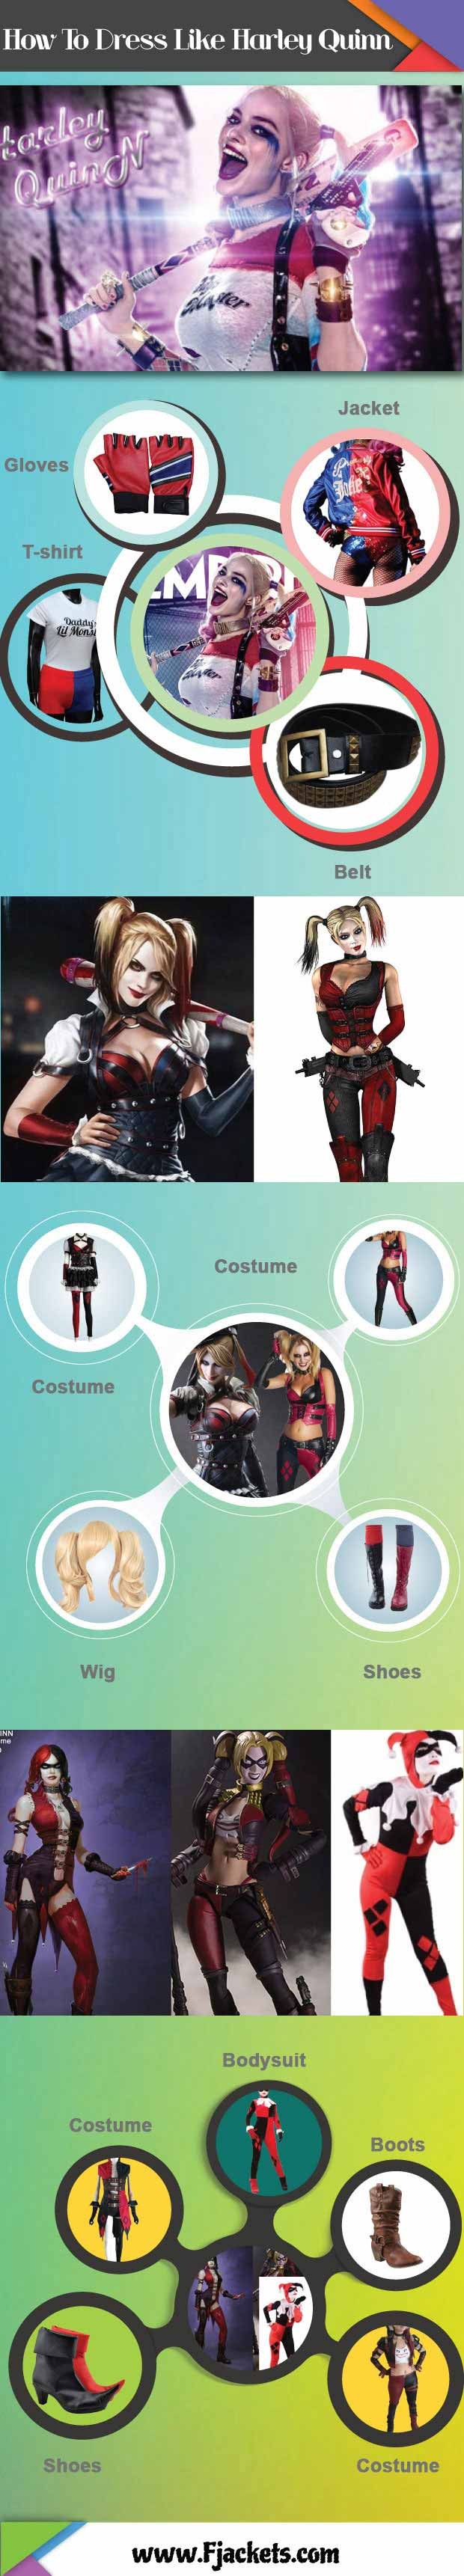 harley-quinn-infographic